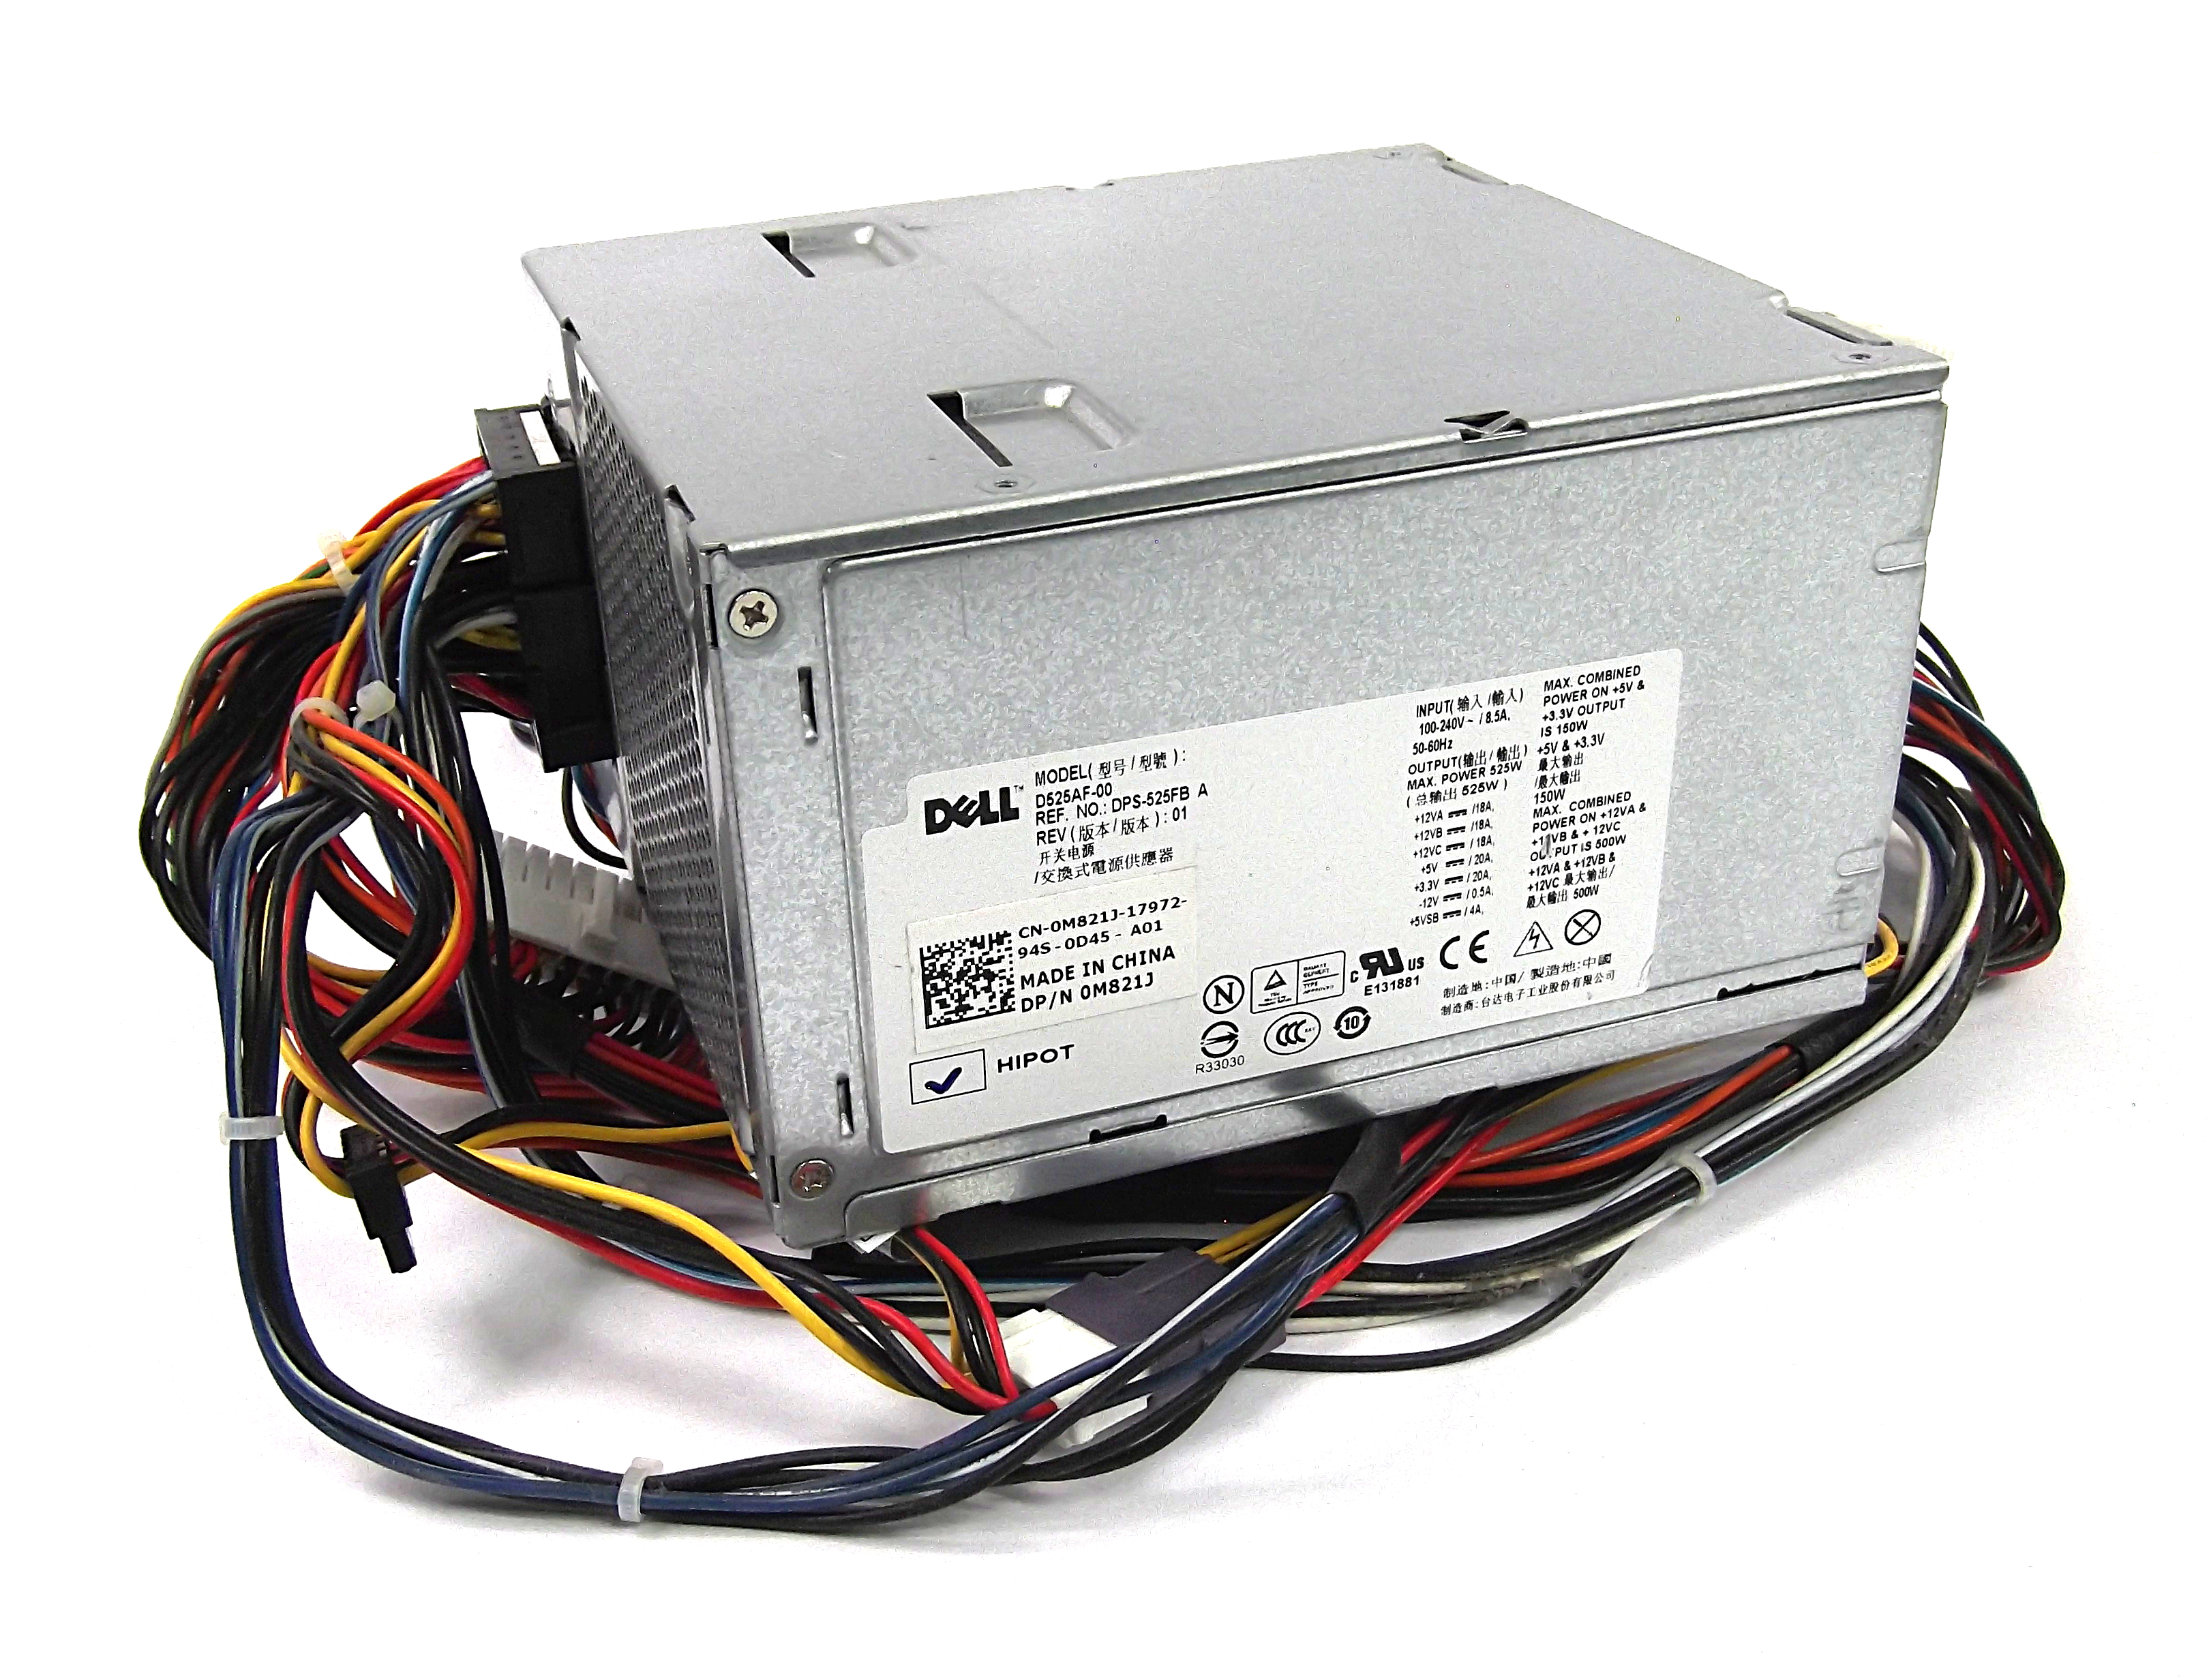 Dell M821j Precision T3500 525w Power Supply With R951h Wiring Harness